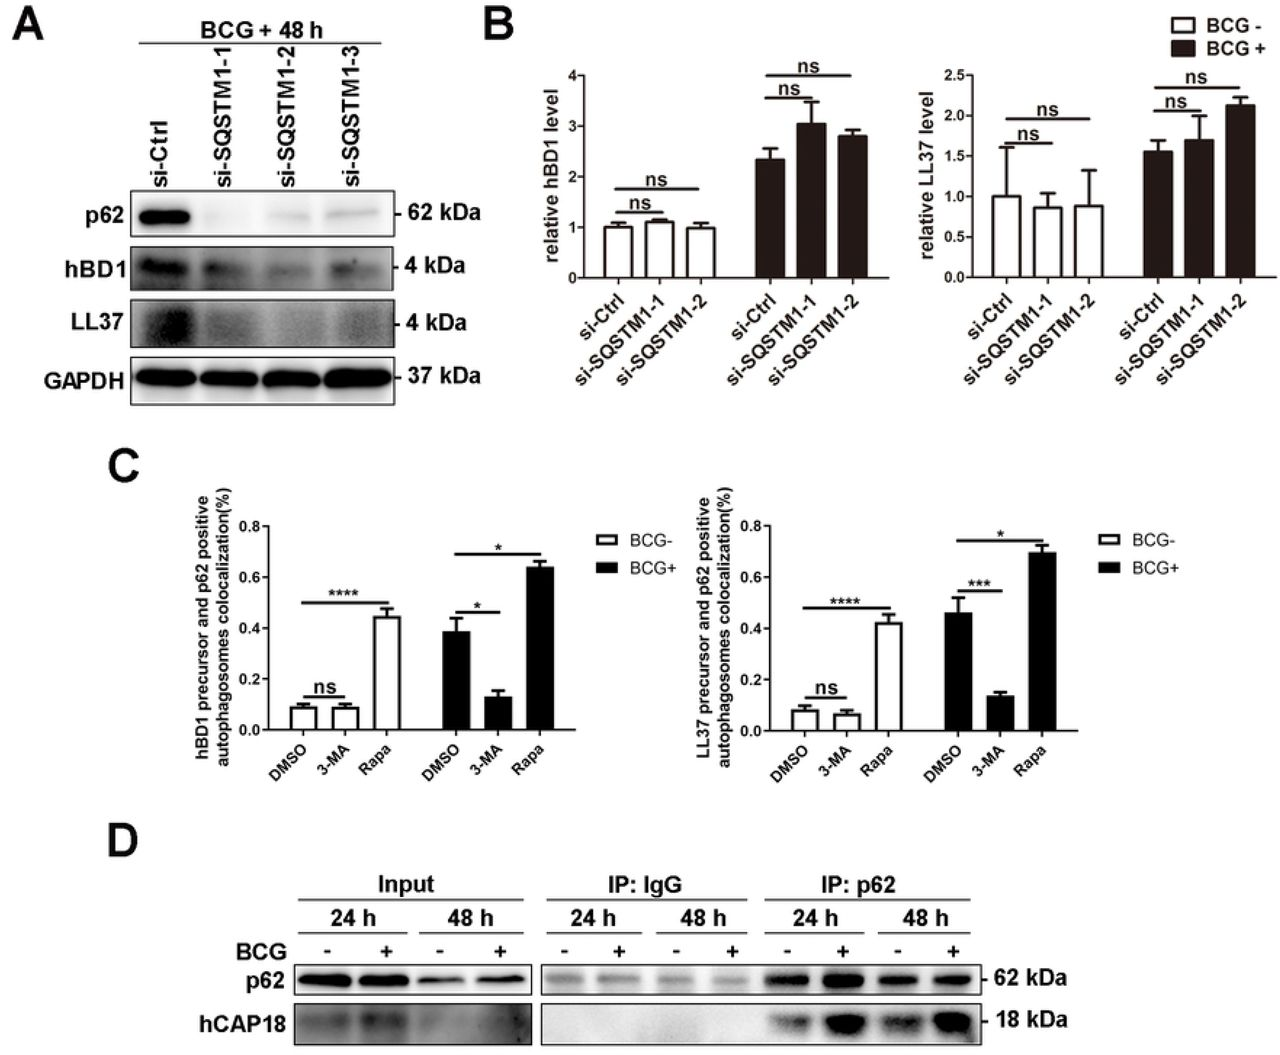 Autophagy adapter protein p62 controls the production of active AMPs by interacting with AMP precursors. (A B) Silencing P62 affected the active peptide levels of hBD1 and LL37. <t>A549</t> cells were transiently transfected with si-control or si-SQSTM1 to silence P62 and then infected with BCG. The expression of hBD1 and LL37 was detected using western blotting and real-time PCR. (C) The autophagic level of A549 cells affected the co-localization level of hBD1/LL37 precursor and p62-positive autophagosomes. A549 cells stably expressing green fluorescent protein (GFP)-tagged LC3 (GFP-LC3) and mCherry Fluorescence Protein (mCherry)-tagged LL37 precursor (LL37 precursor-mCherry) were pretreated with 3-MA and rapamycin and infected with BCG as described above. GFP-LC3 puncta ( > 1 μm) were observed and counted under confocal microscopy. Co-localization of hBD1/LL37 precursor, p62, and GFP-LC3, labeled using Alexa Fluor 647-coupled antibody against p62, was detected by confocal microscopy. (D) Direct interaction could be observed between p62 and hCAP18. A549 cells were infected with BCG for 24 and 48 h. The interaction between p62 and hCAP18 was detected by Co-IP with anti-p62 antibody followed by western blotting with anti-p62 and anti-hCAP18 antibodies. Data are expressed as the means ± standard deviation (s.d.) * p